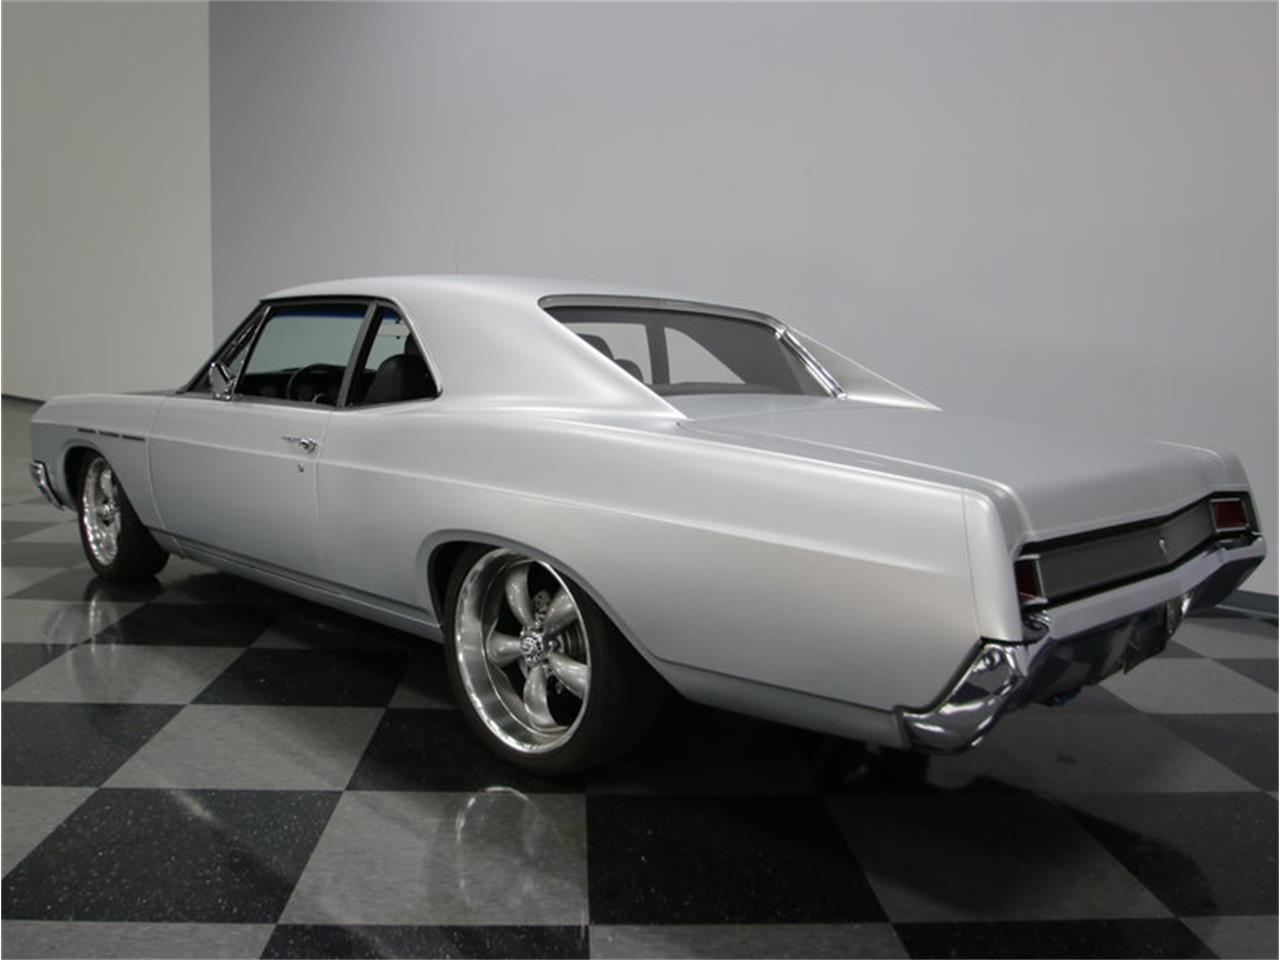 Large Picture of '66 Buick Skylark Pro Touring located in Lithia Springs Georgia Offered by Streetside Classics - Atlanta - L93D